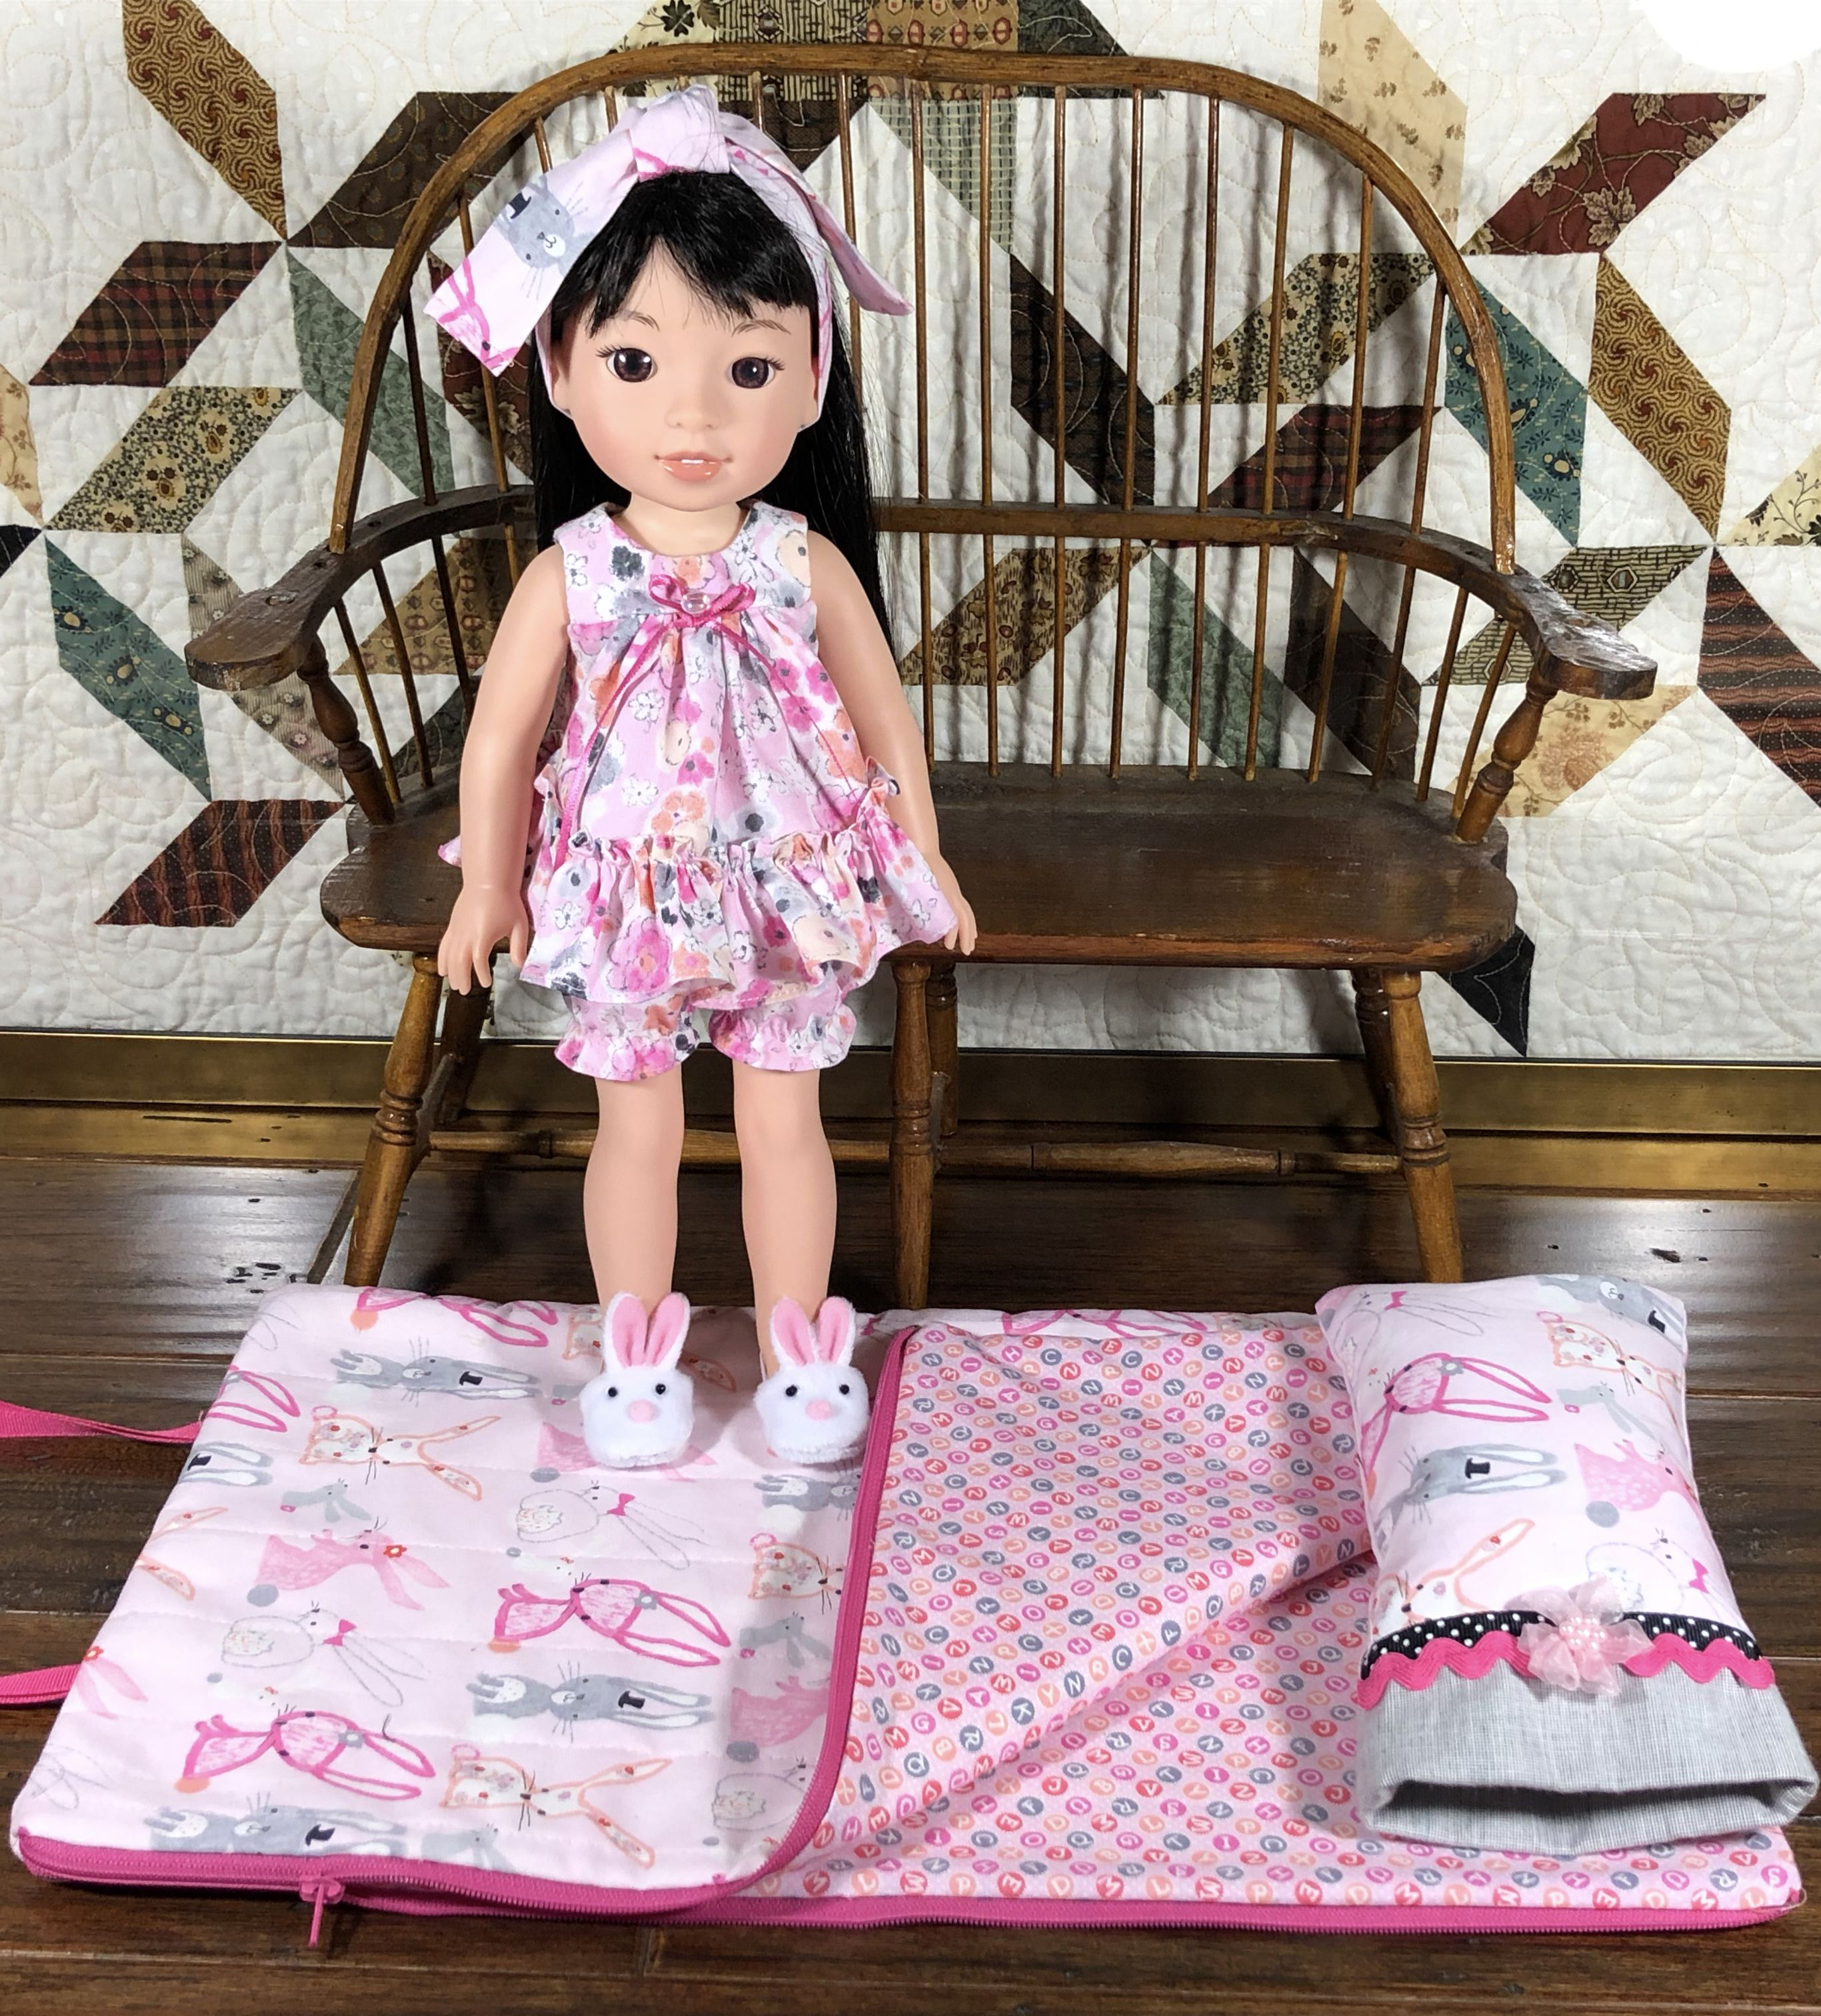 Pink Bunny Doll Nightgown Fits 14 Inch American Girl Wellie Wishers Doll Clothes